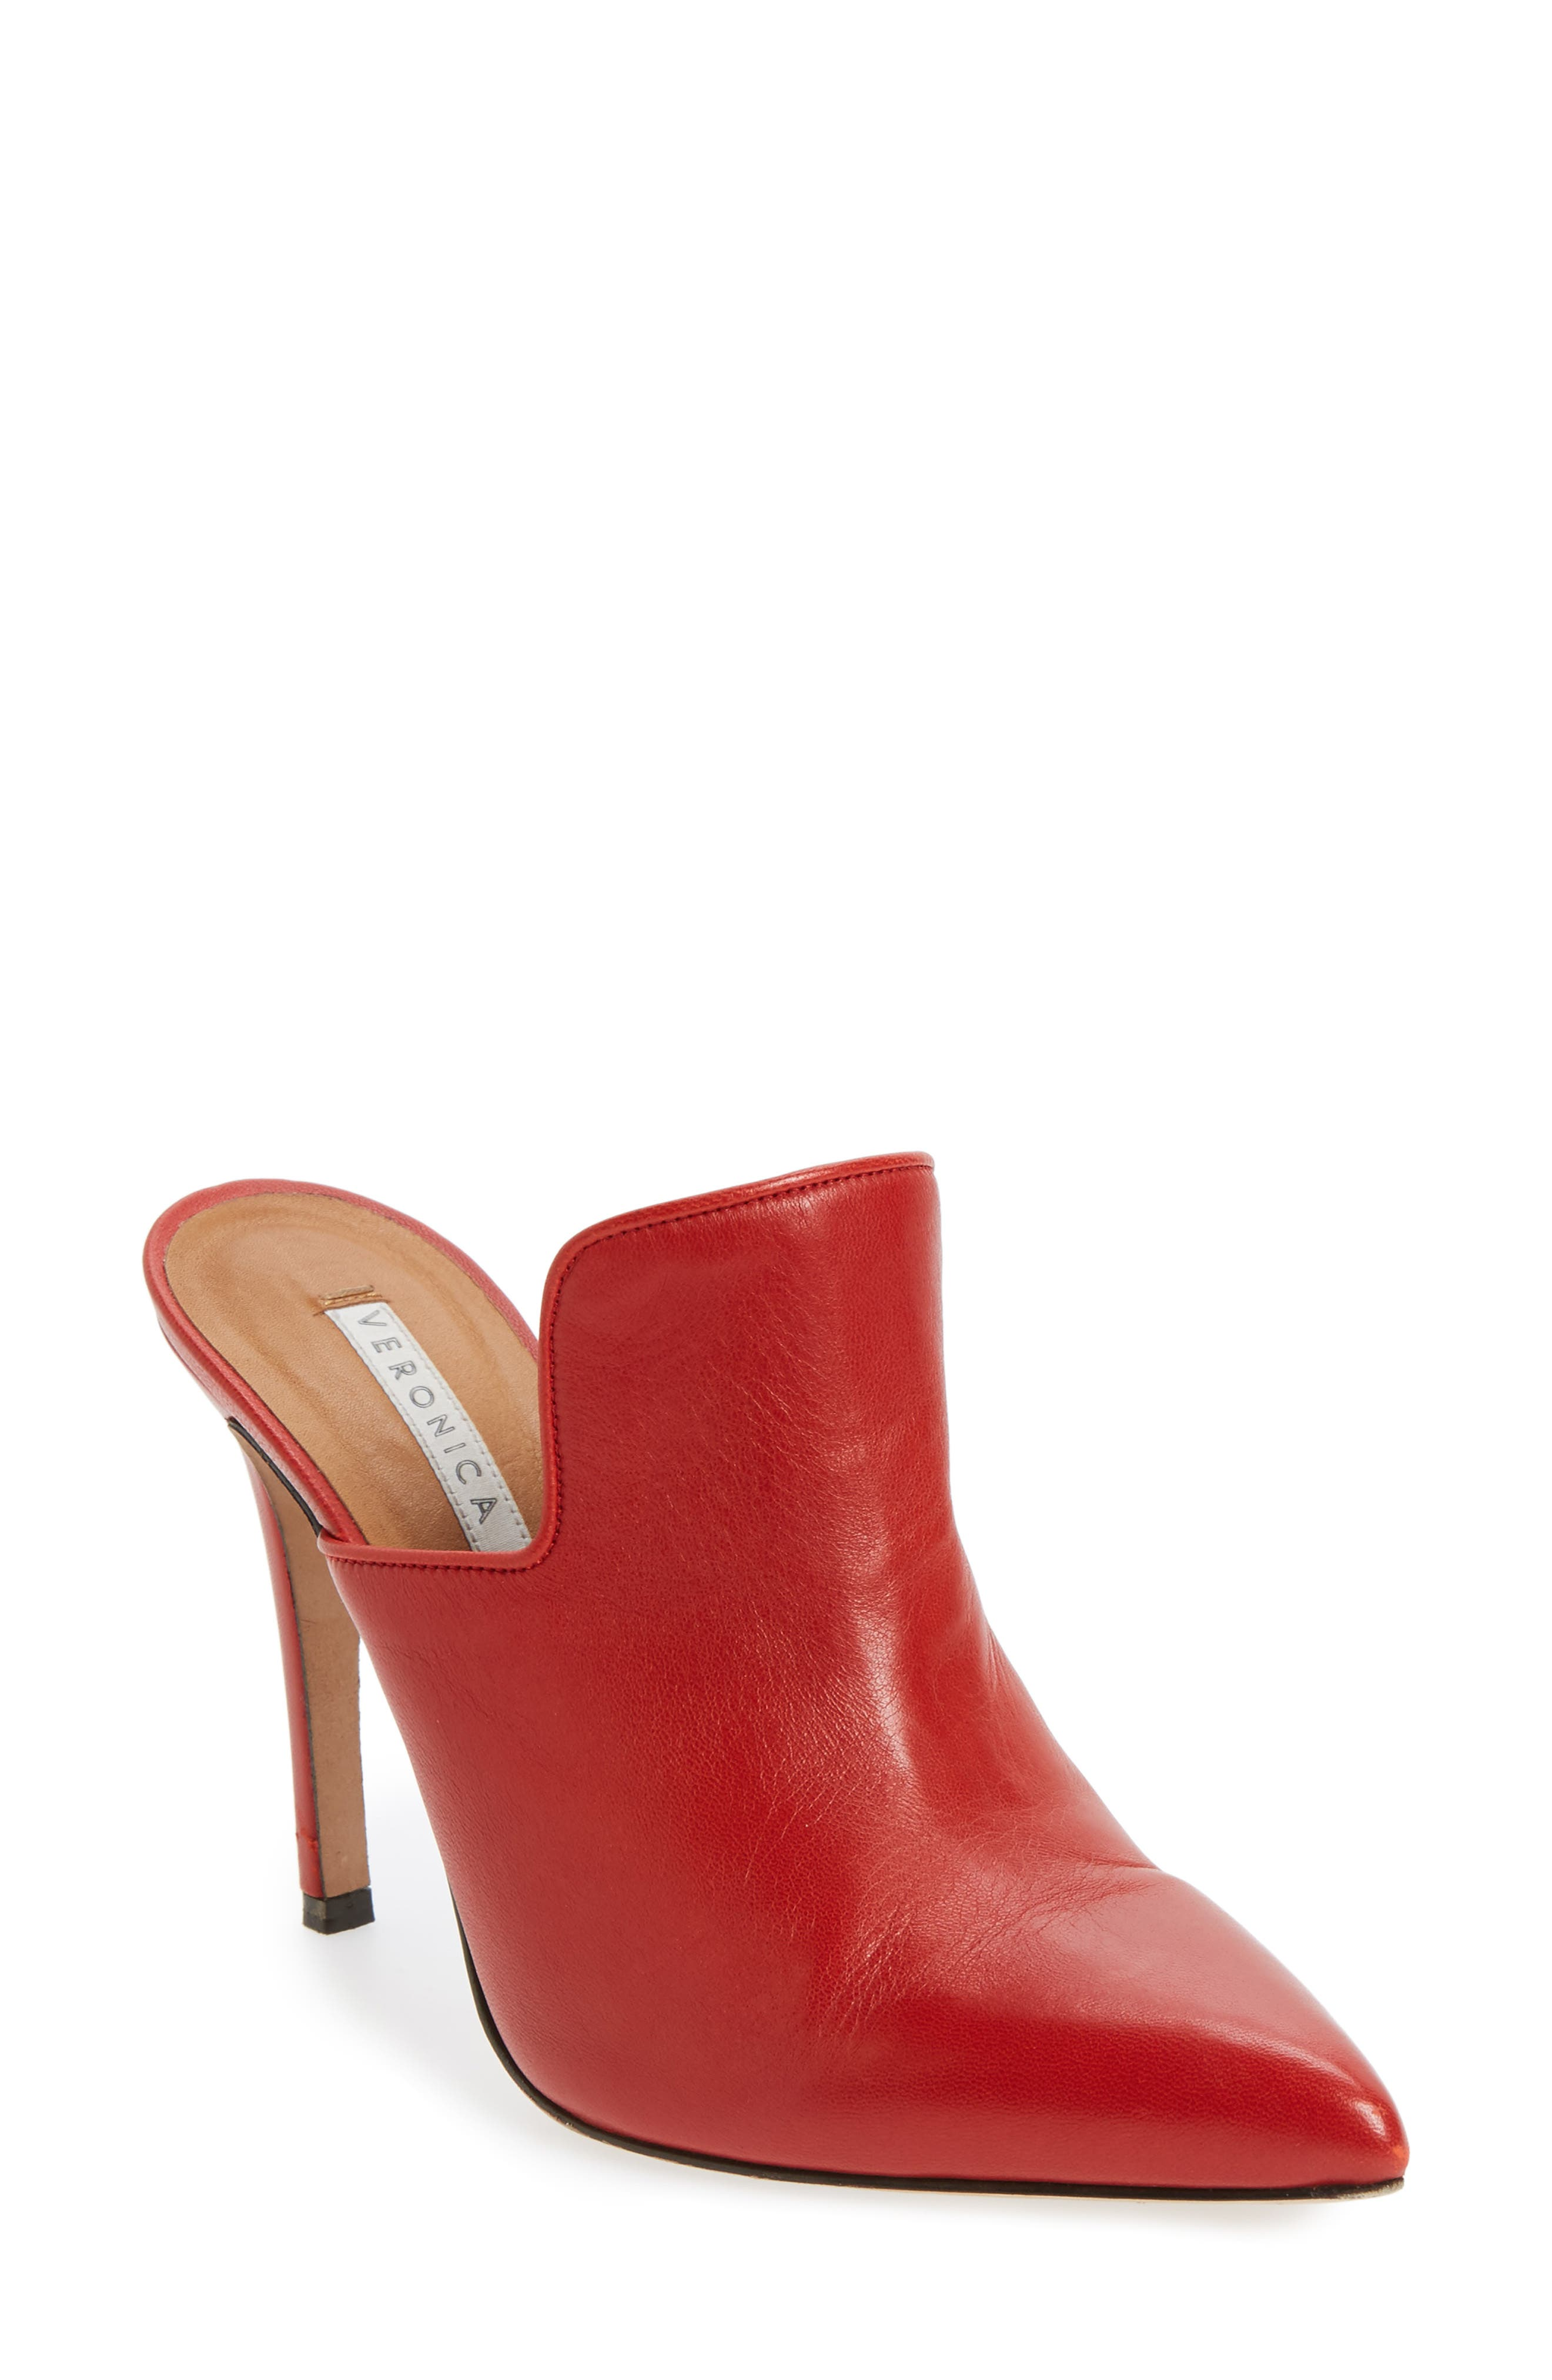 Veronica Beard Penn Pointy Toe Mule (Women)